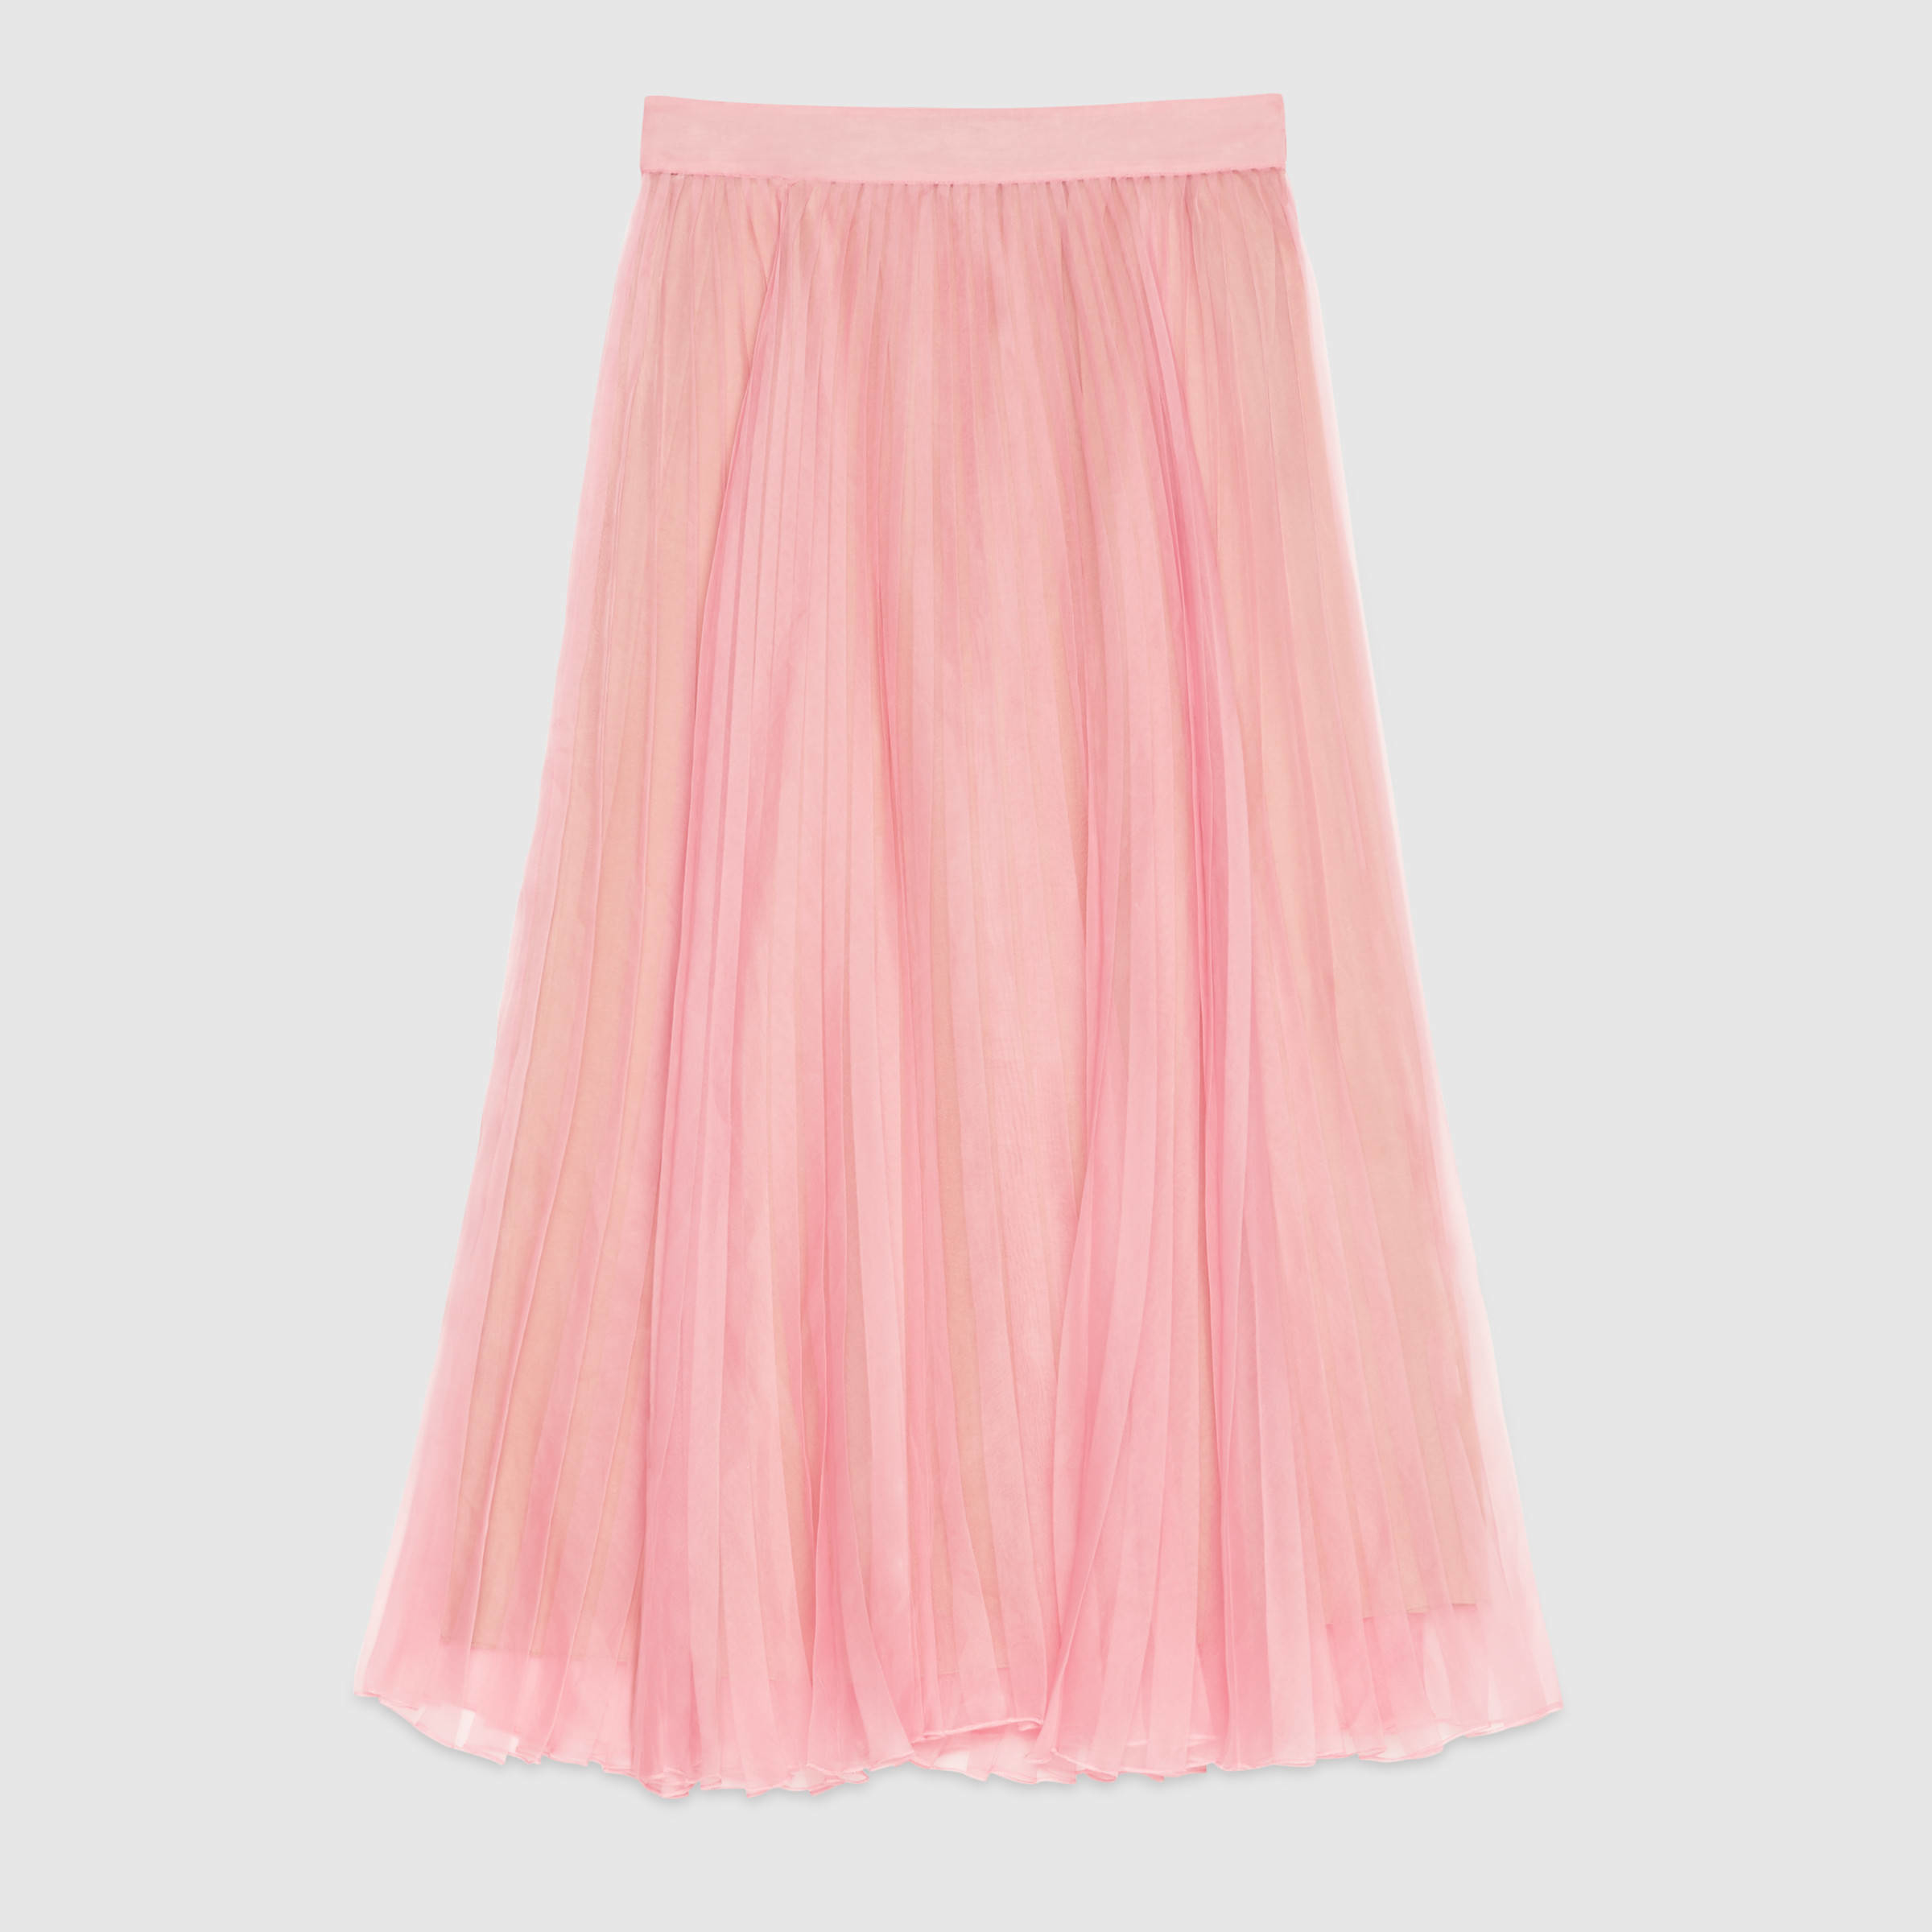 Gucci Silk Organza Pleated Skirt in Pink